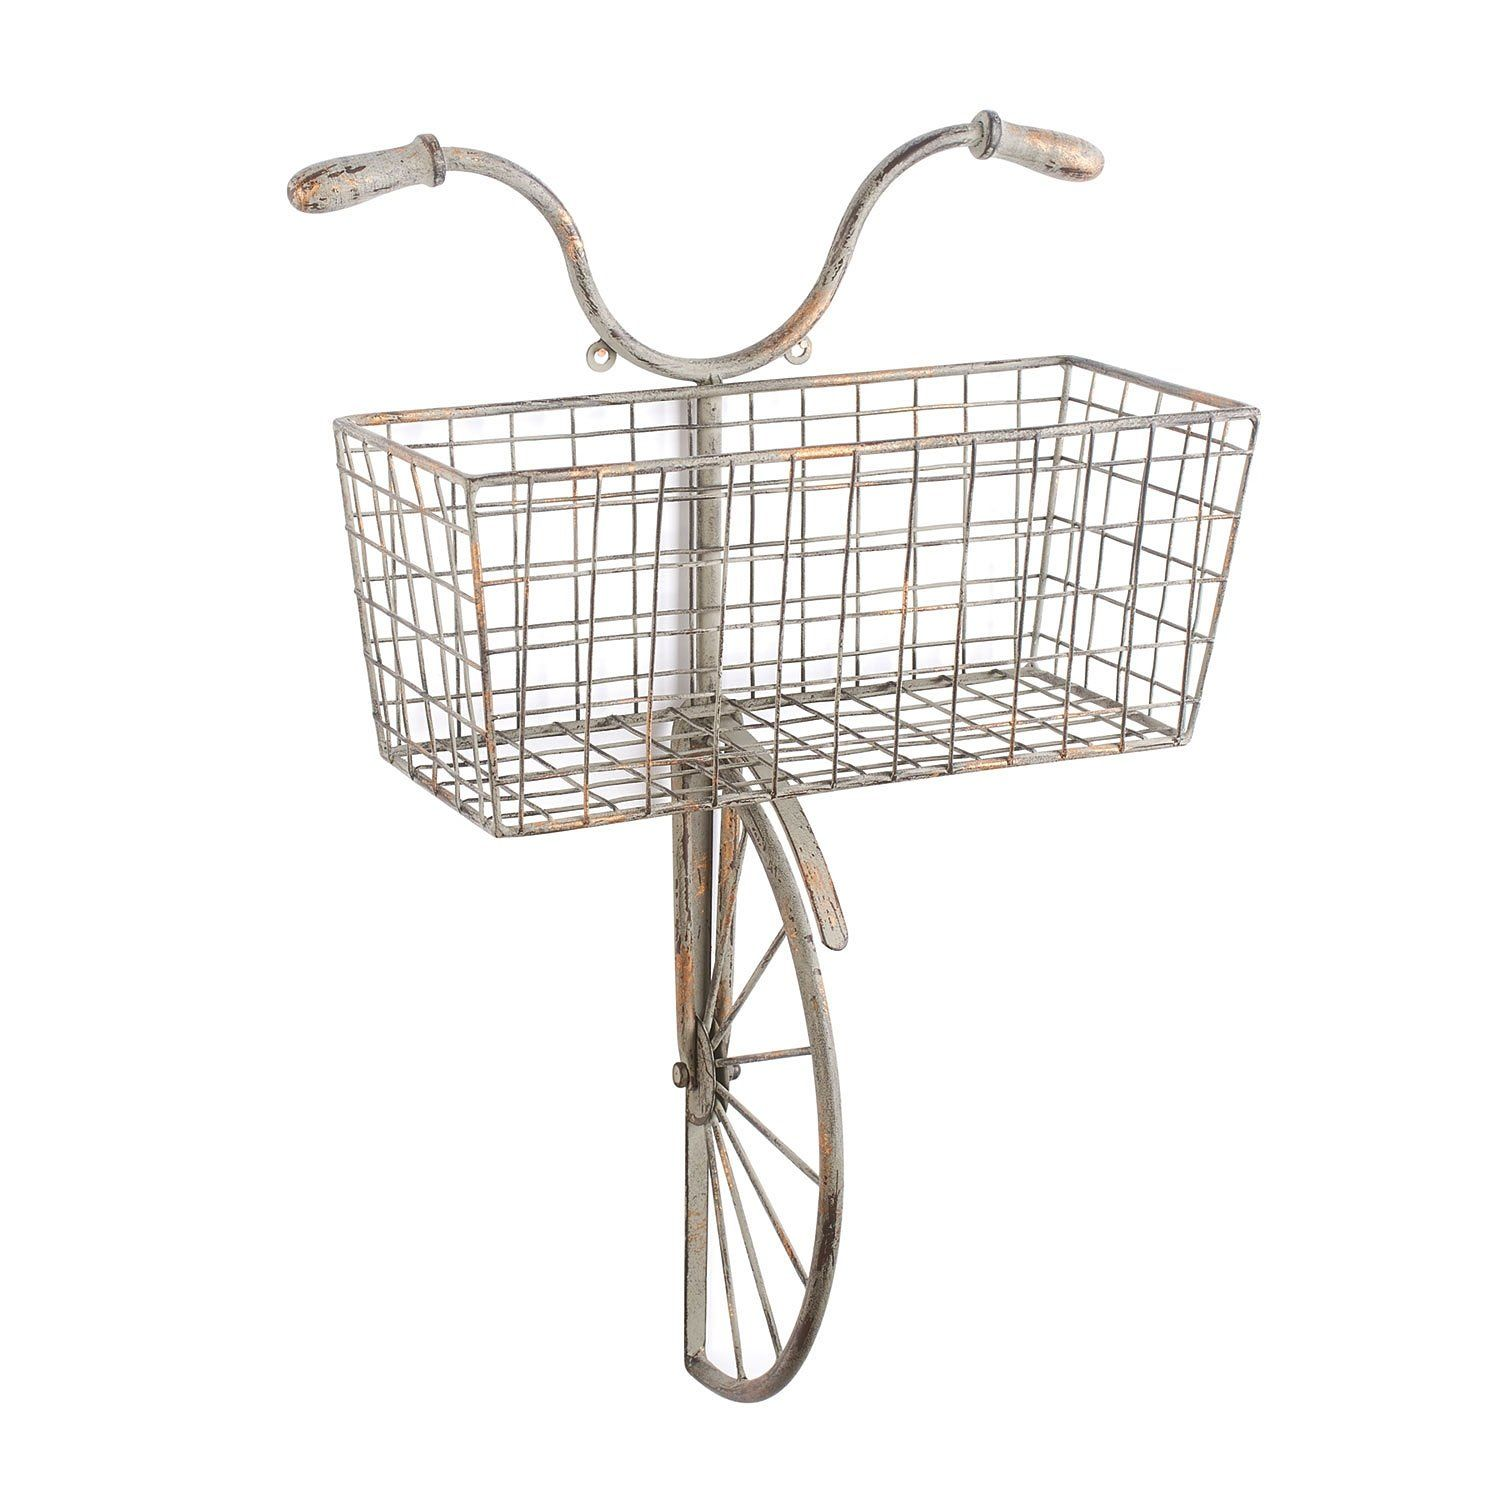 Iron Bicycle Wall Decor - Basket for Storage Magazine Rack ... on Decorative Wall Sconces For Flowers Hanging Baskets Delivery id=58201